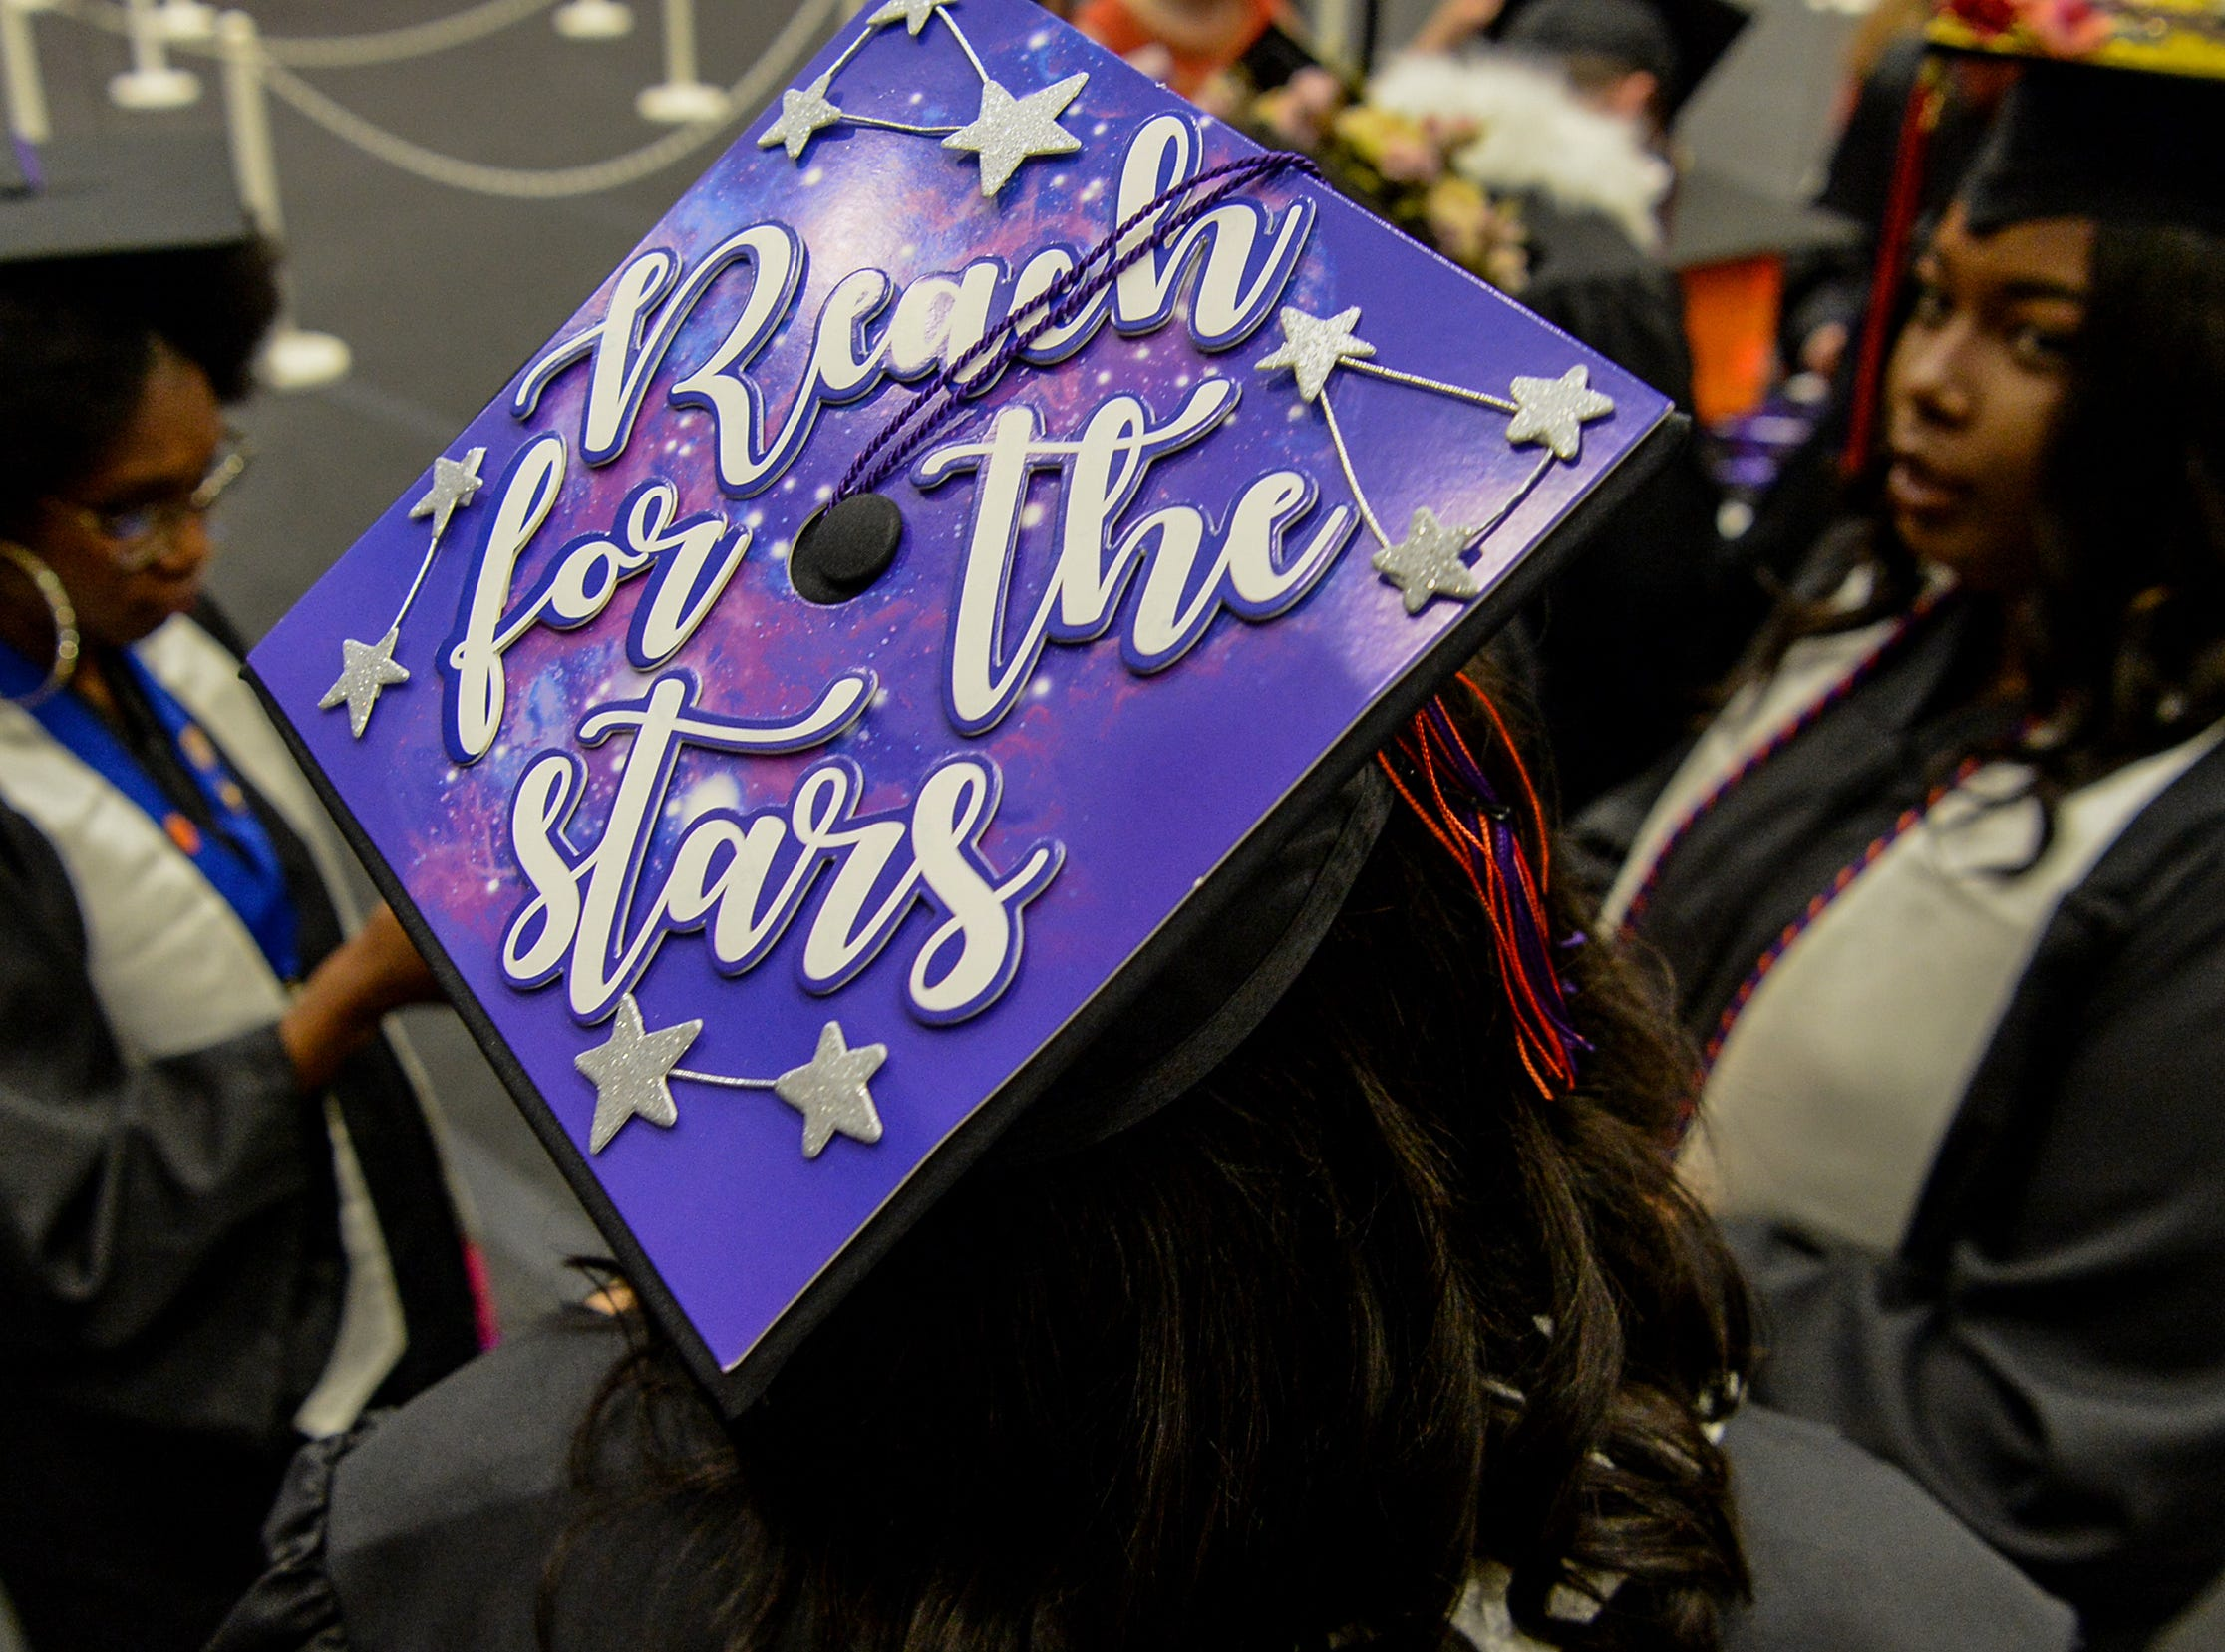 """Natasha Brigmon wears a cap with """"Reach for the stars"""" written on it during Clemson University commencement ceremonies in Littlejohn Coliseum in Clemson Friday, May 10, 2019."""